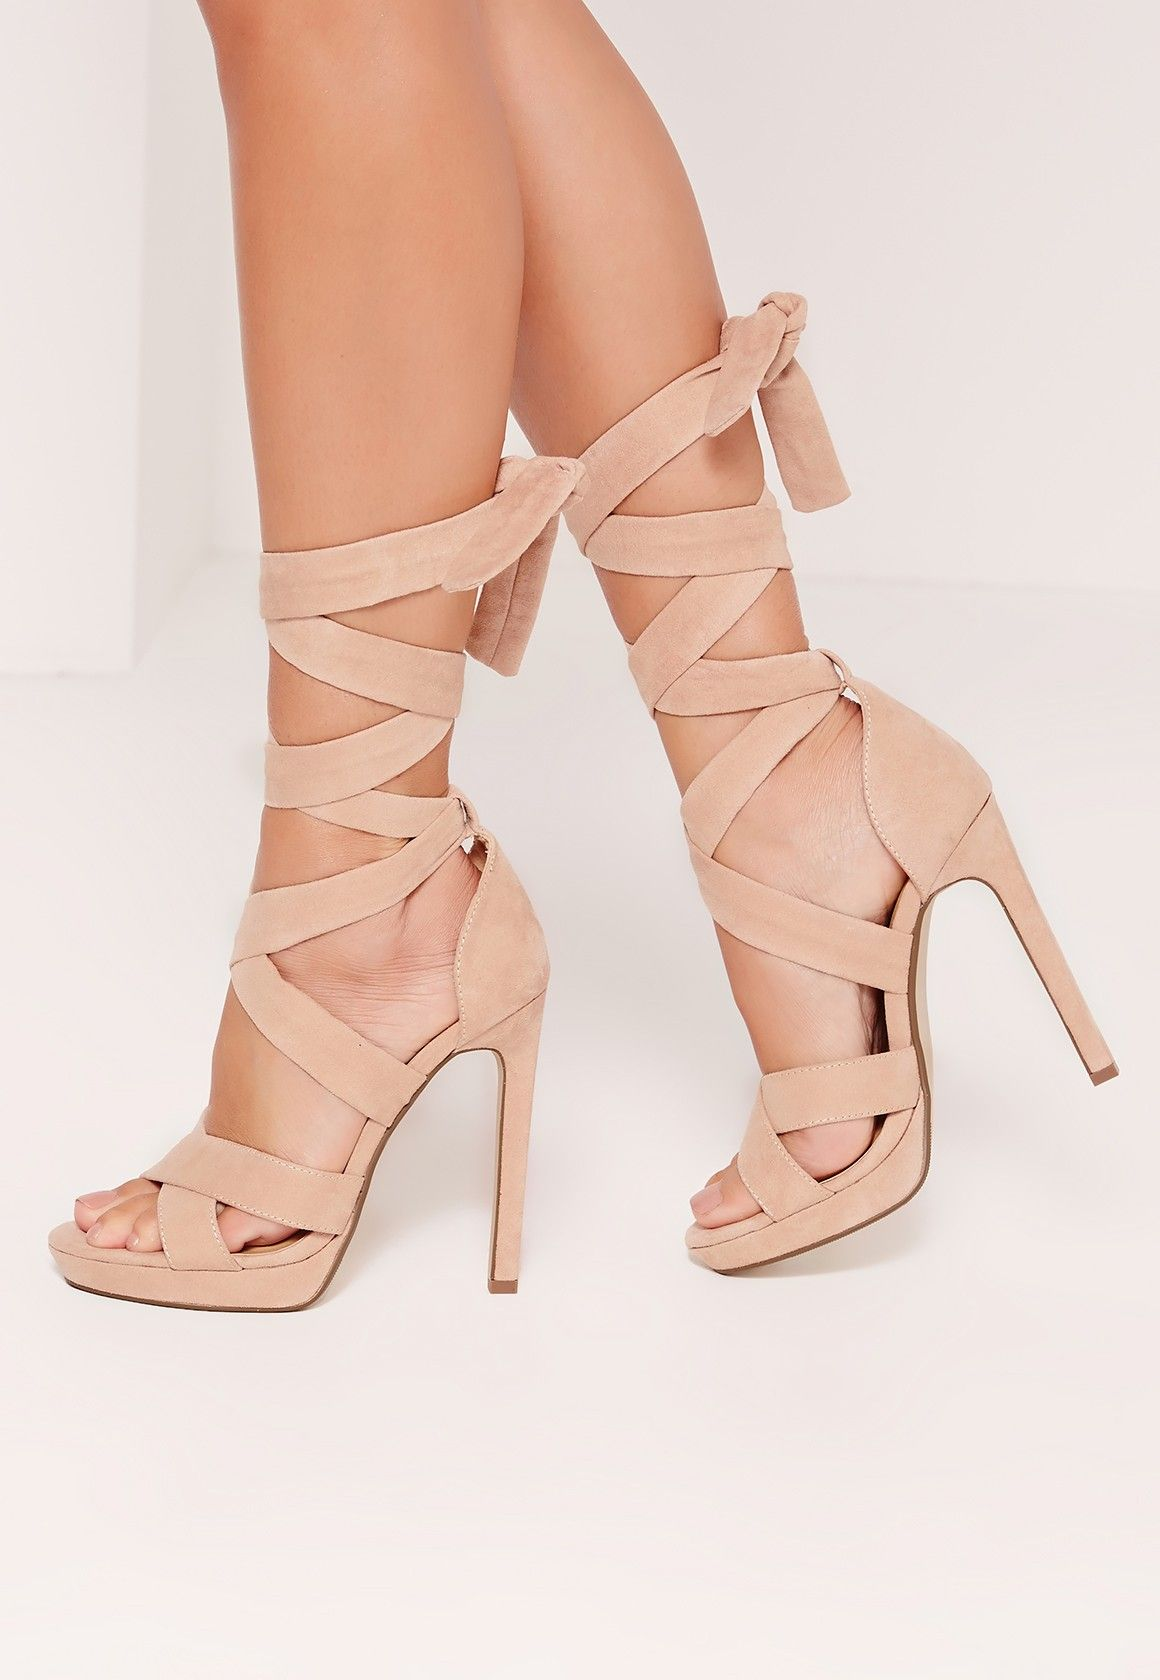 Missguided - Wrap Around Strap Platform Heels Nude  4493e51a57a6